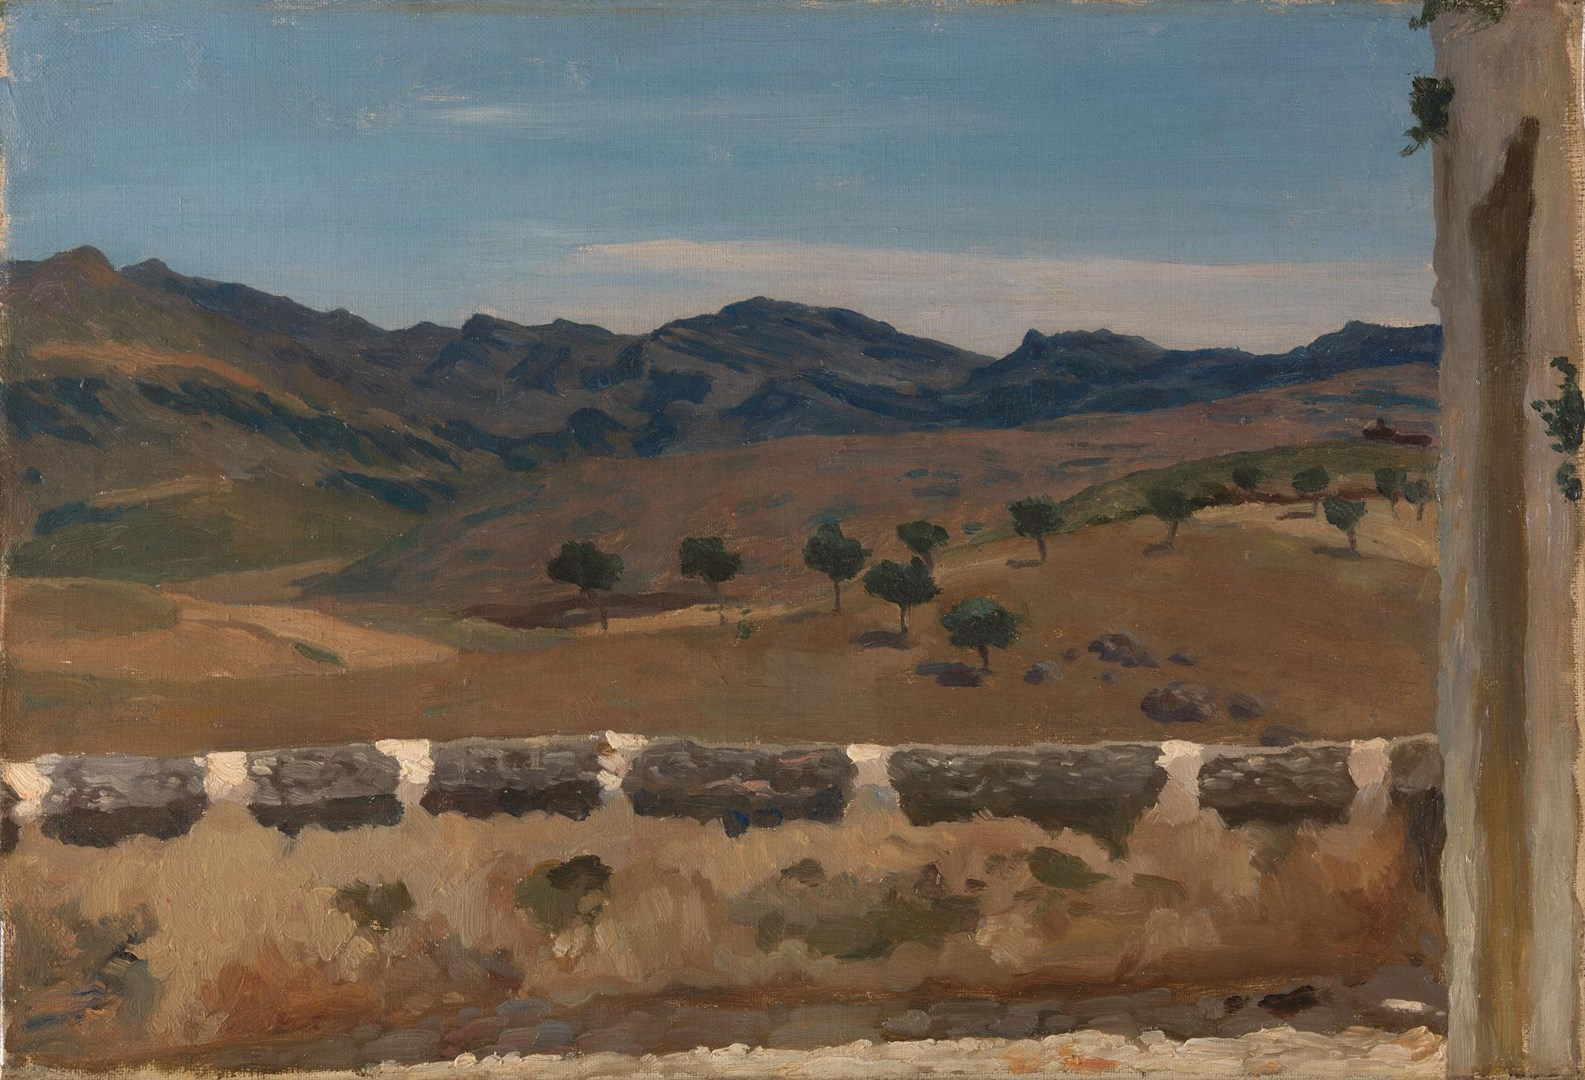 A View in Spain by Frederic, Lord Leighton